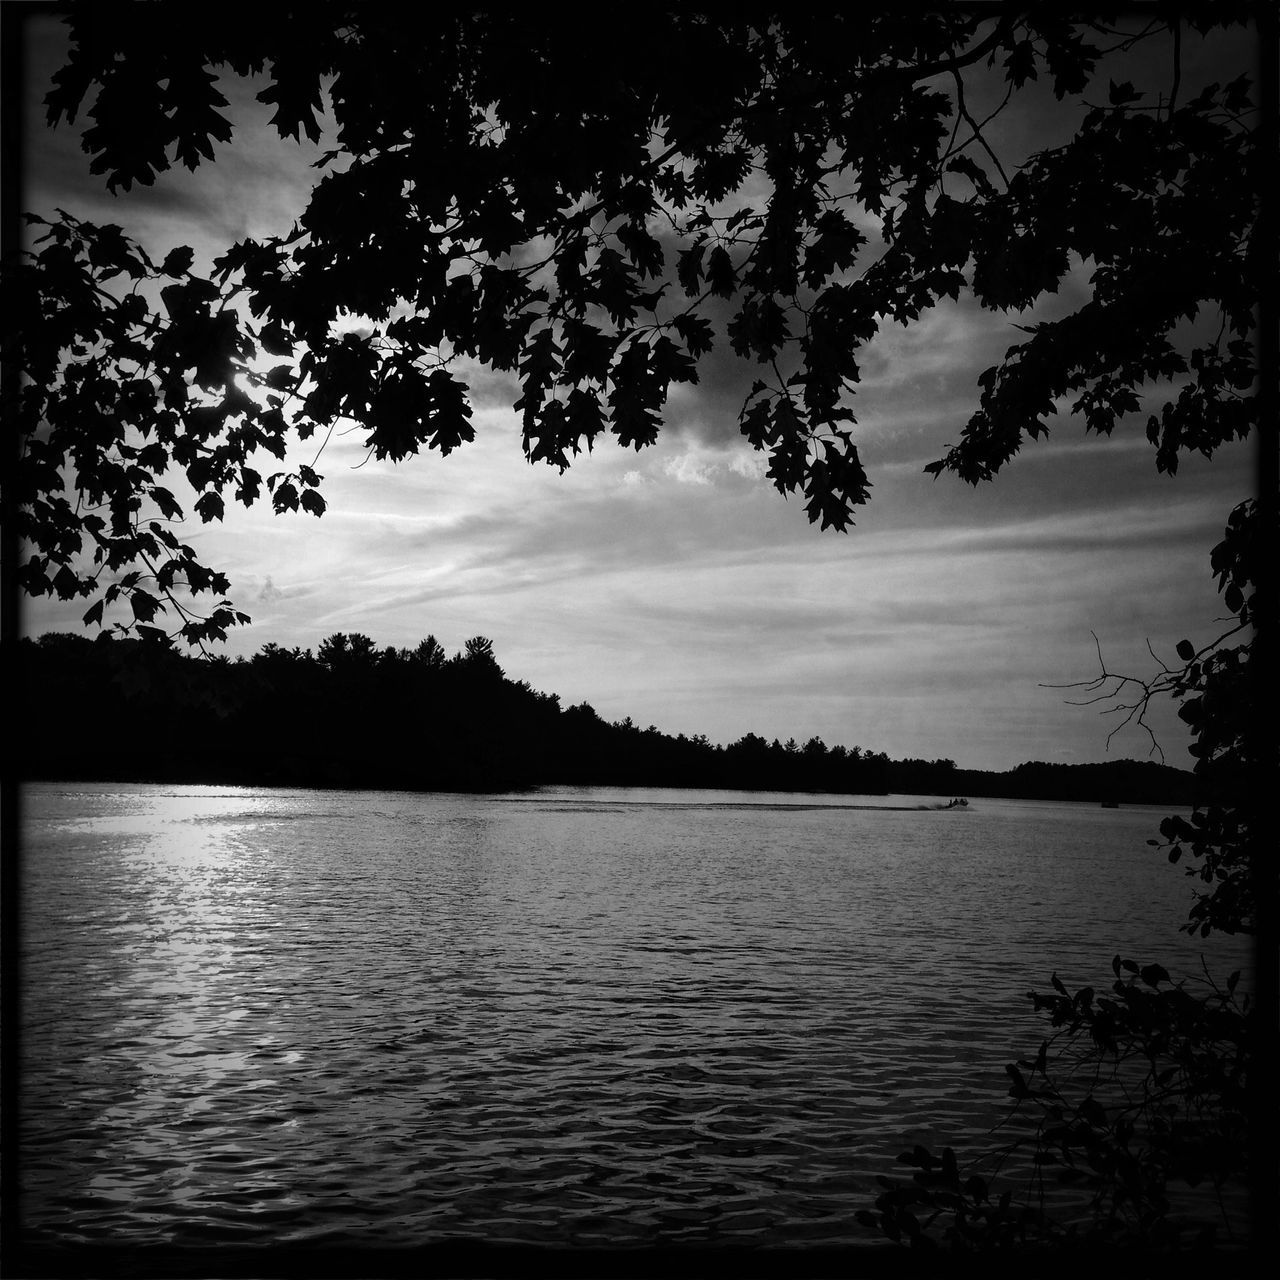 View of calm lake against silhouette trees